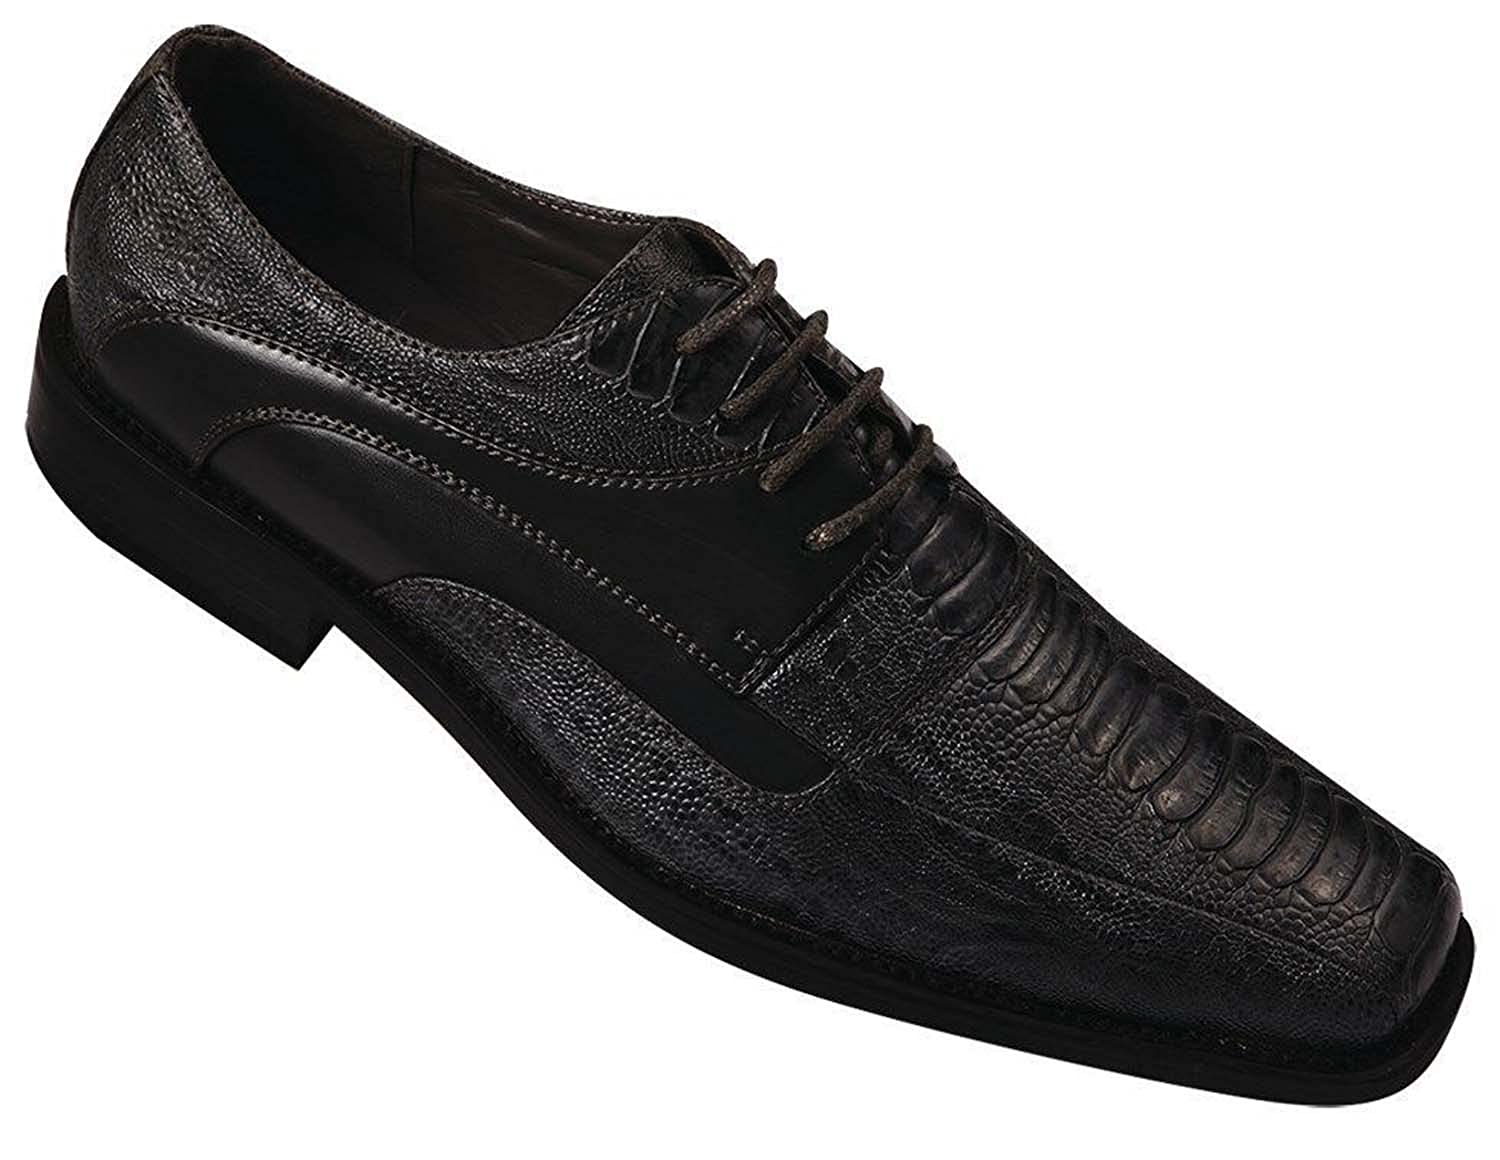 Milano Moda Mens Embossed Faux Leather Dress Shoe 5748